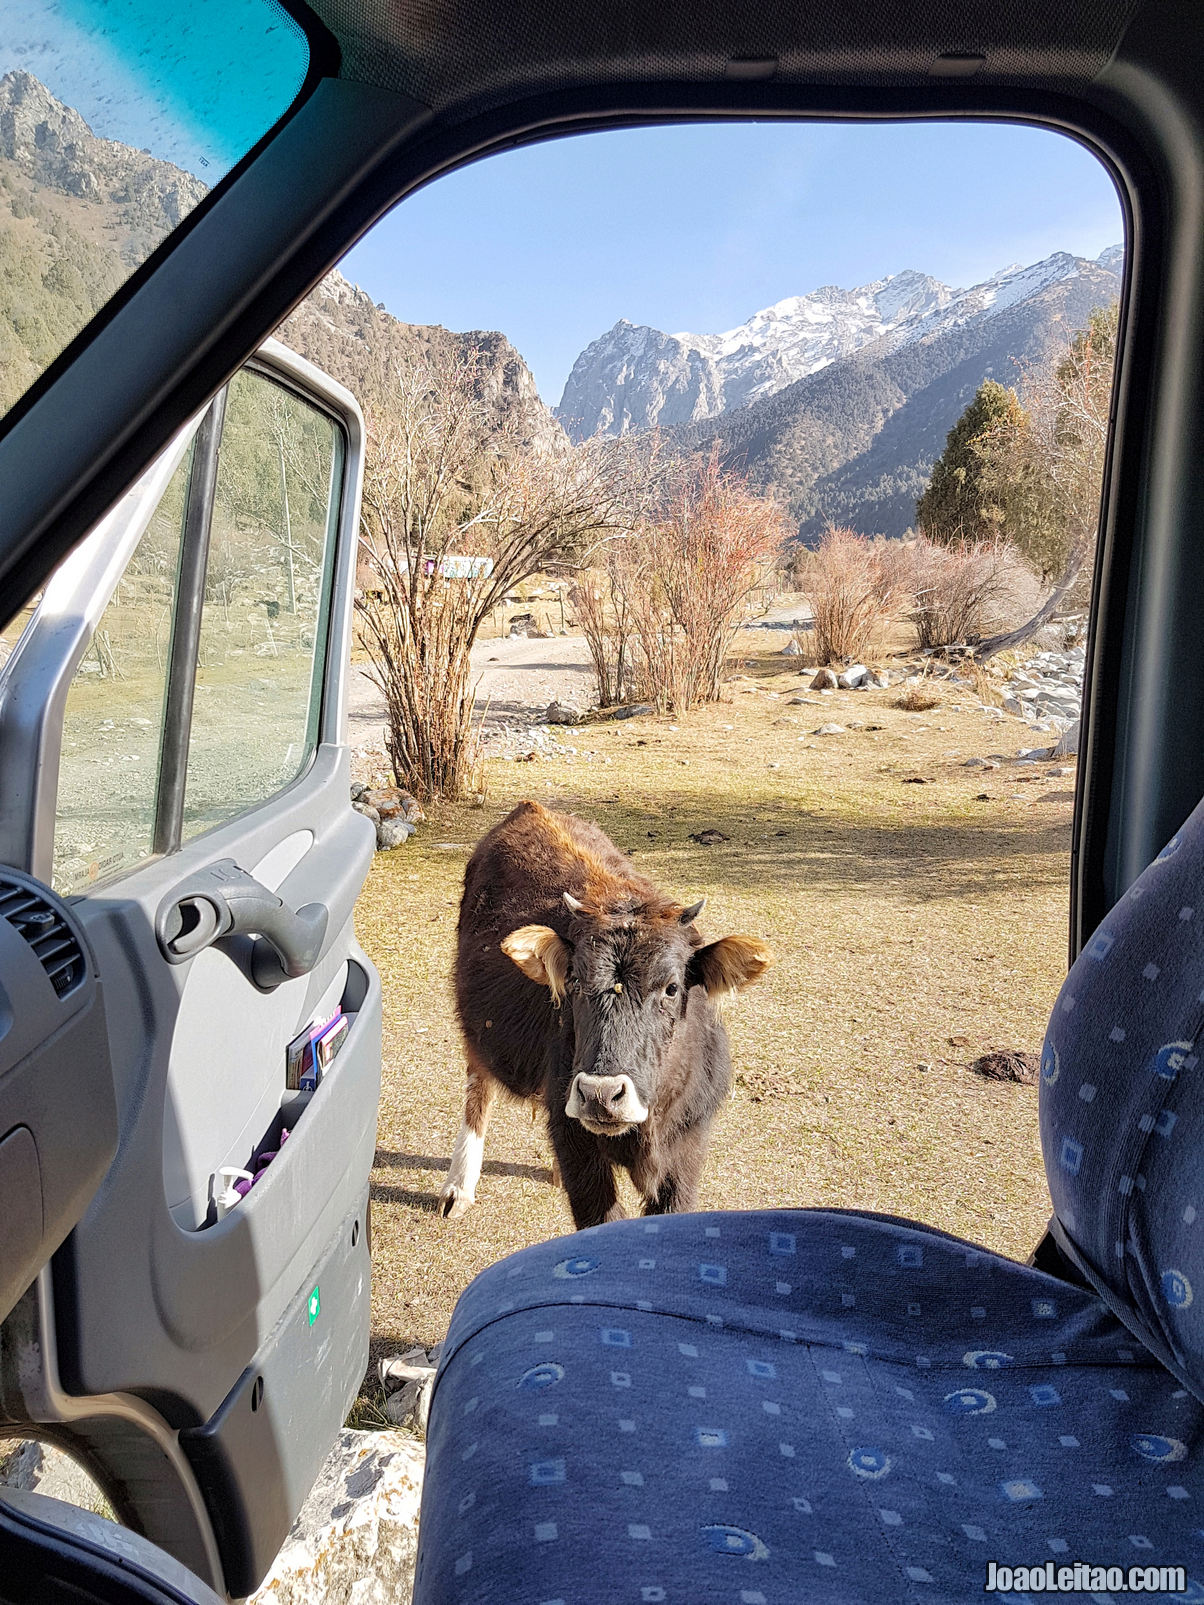 Friendly cow at Kyrgyz Ata National Park